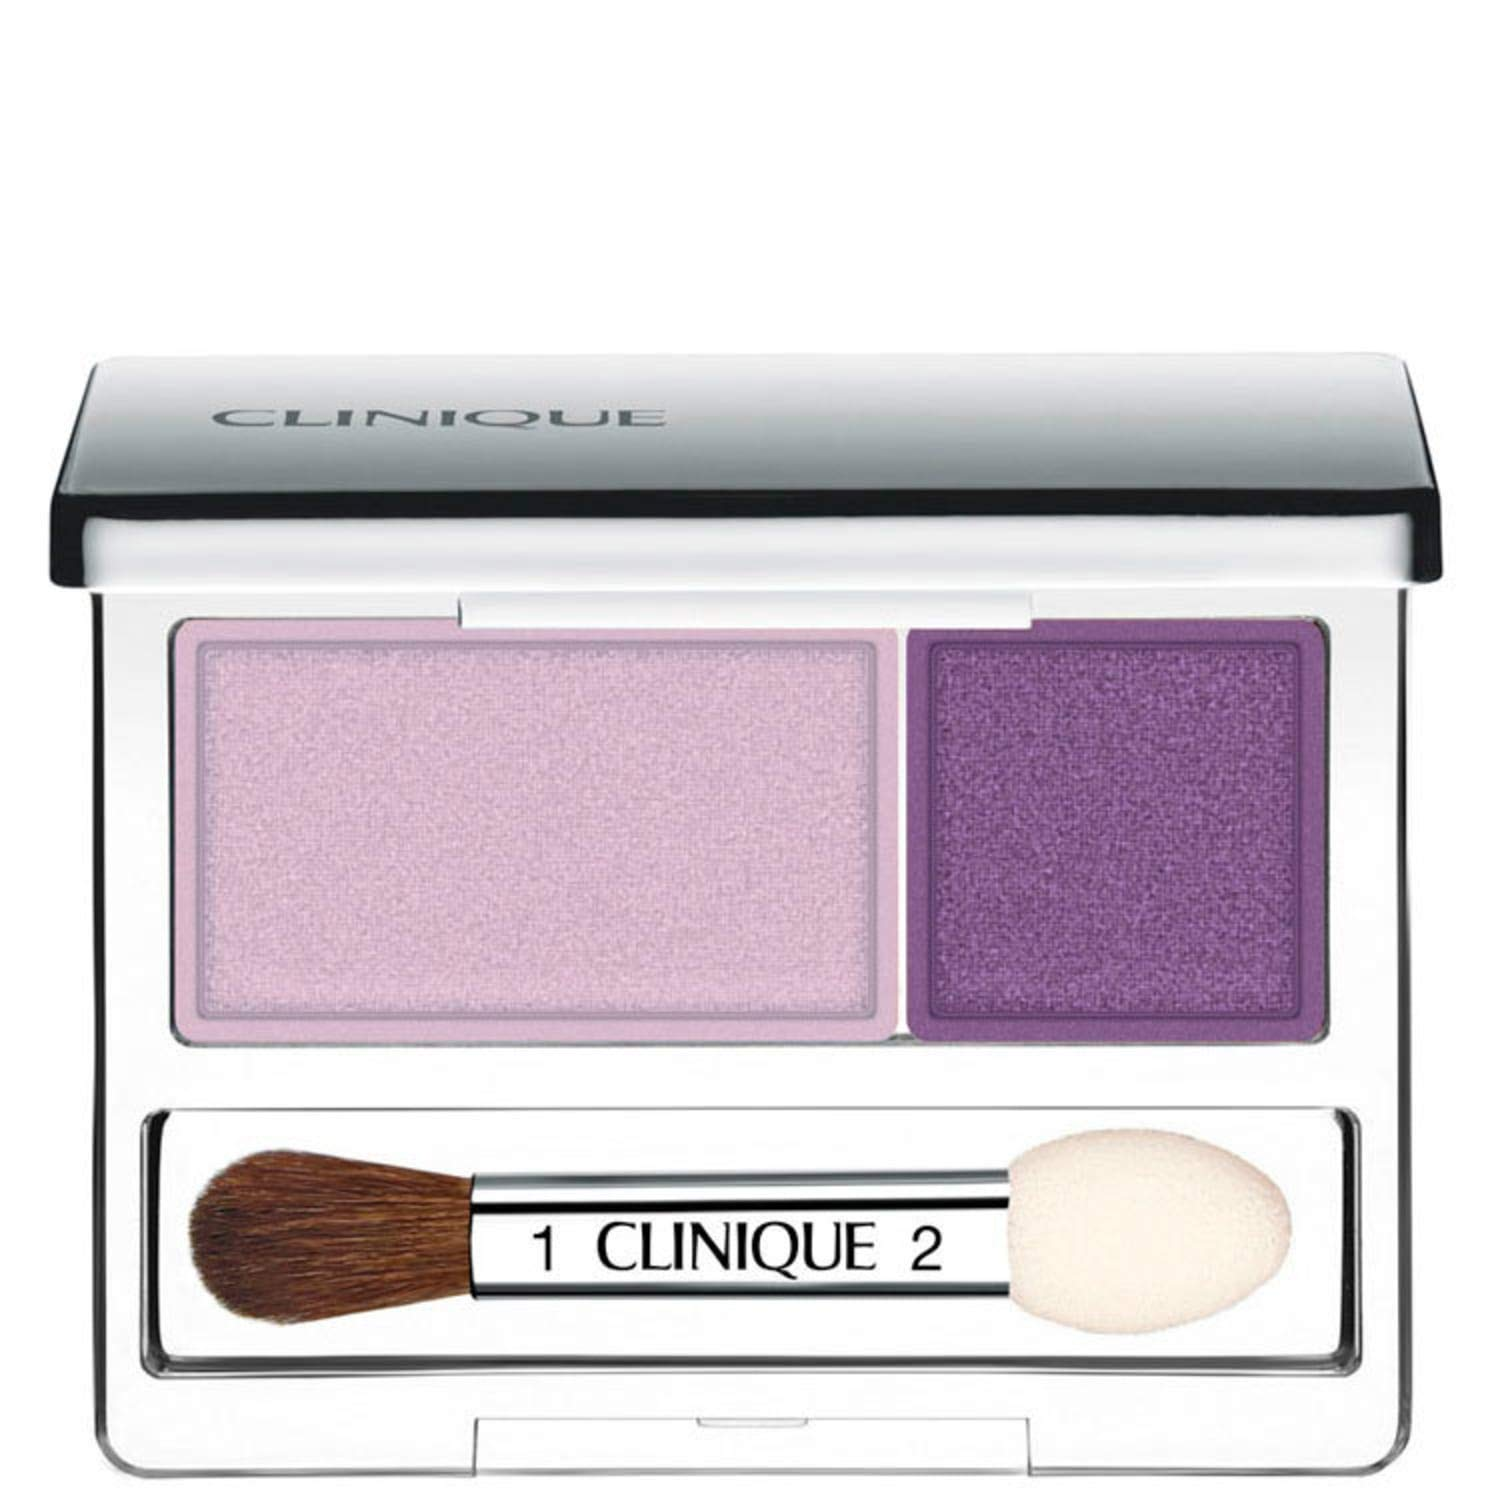 New Item CLINIQUE ALL ABOUT SHADOW EYE SHADOW 0.07 OZ CLINIQUE/ALL ABOUT SHADOW DUO TWILIGHT MAUVE/BRANDIED PLUM .07 OZ VIOLET AND PURPLE SHIMMER